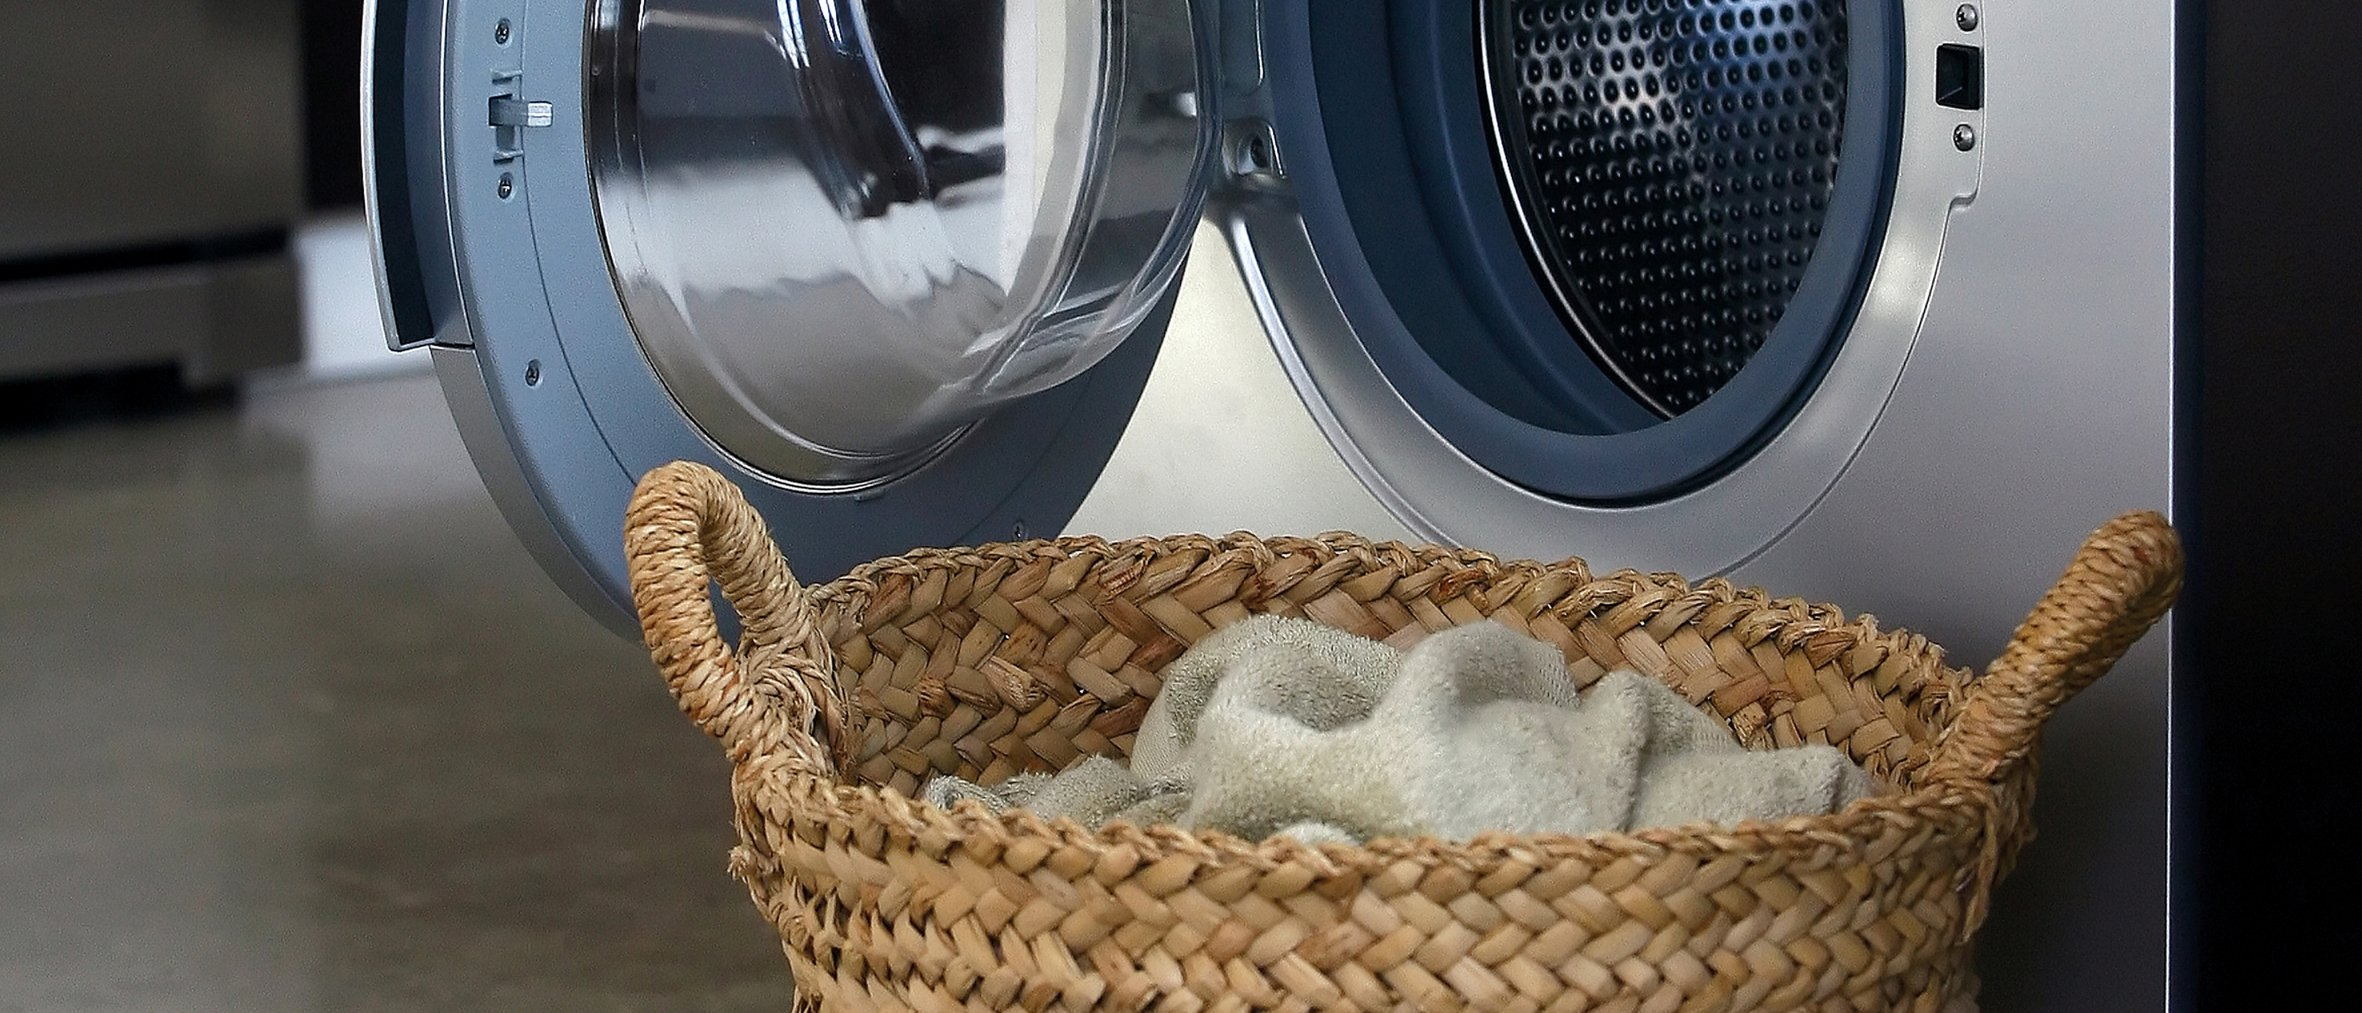 Interior of luxury laundry room with washing mashine